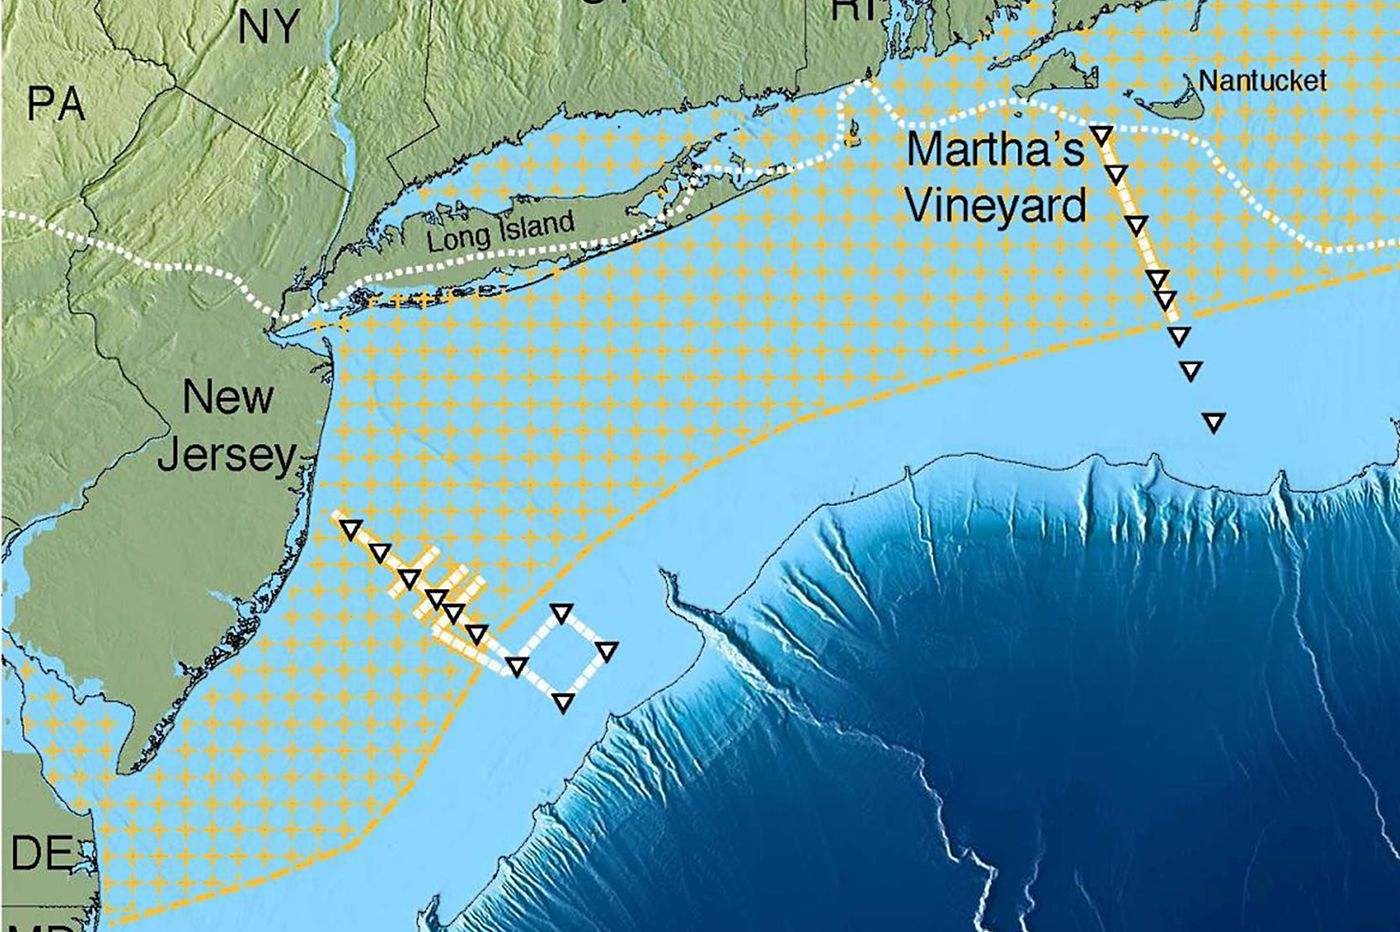 Off the Jersey Shore, a vast deposit of